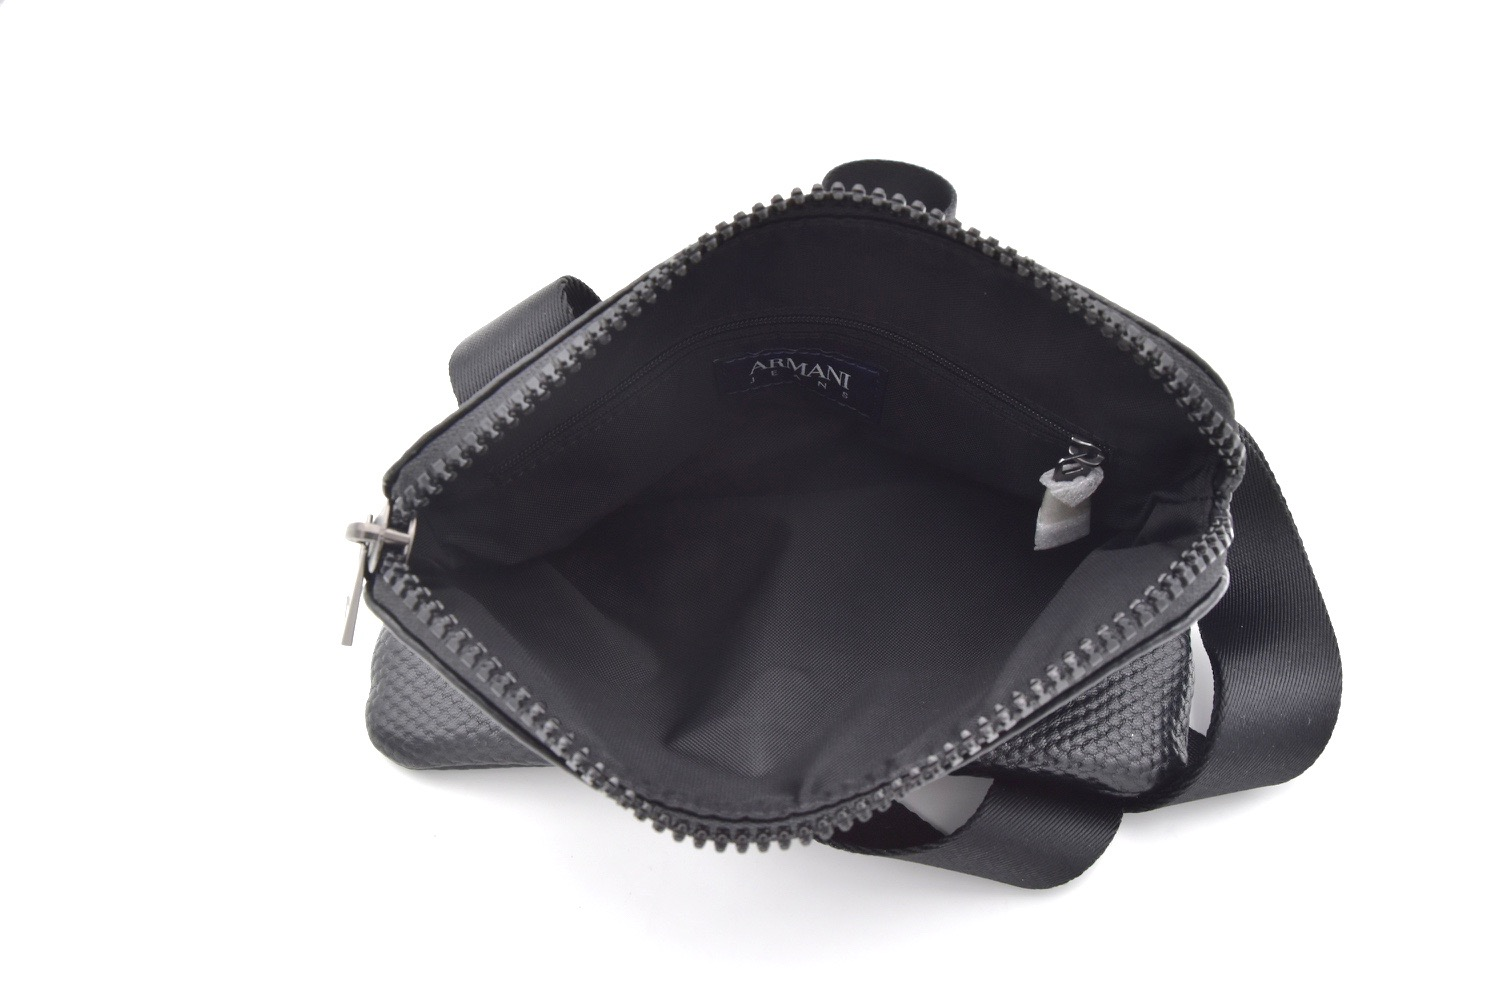 afcc855f7a4 ARMANI JEANS MAN SMALL SHOULDER BAG CROSSBAG POLYESTER CODE 932126 ...